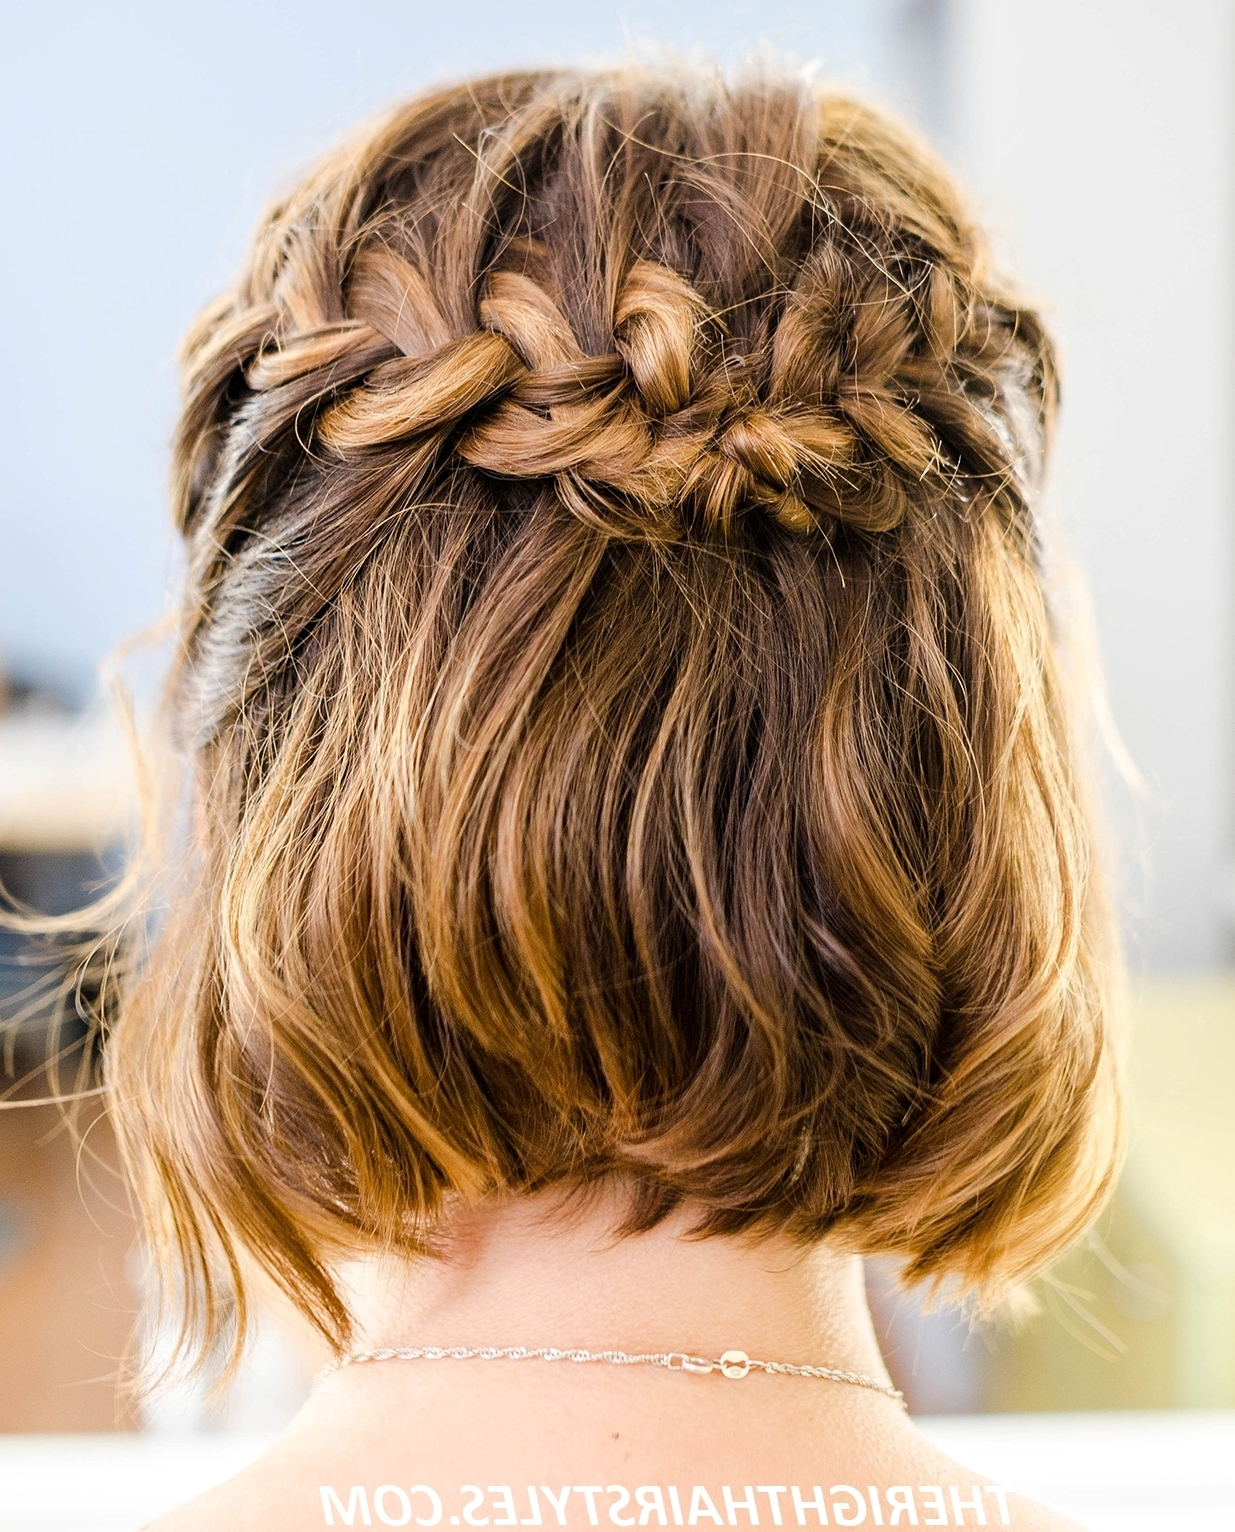 How To Do A Half Up French Braid Crown In 6 Easy Steps Regarding Latest Braided Along The Way Hairstyles (View 12 of 20)